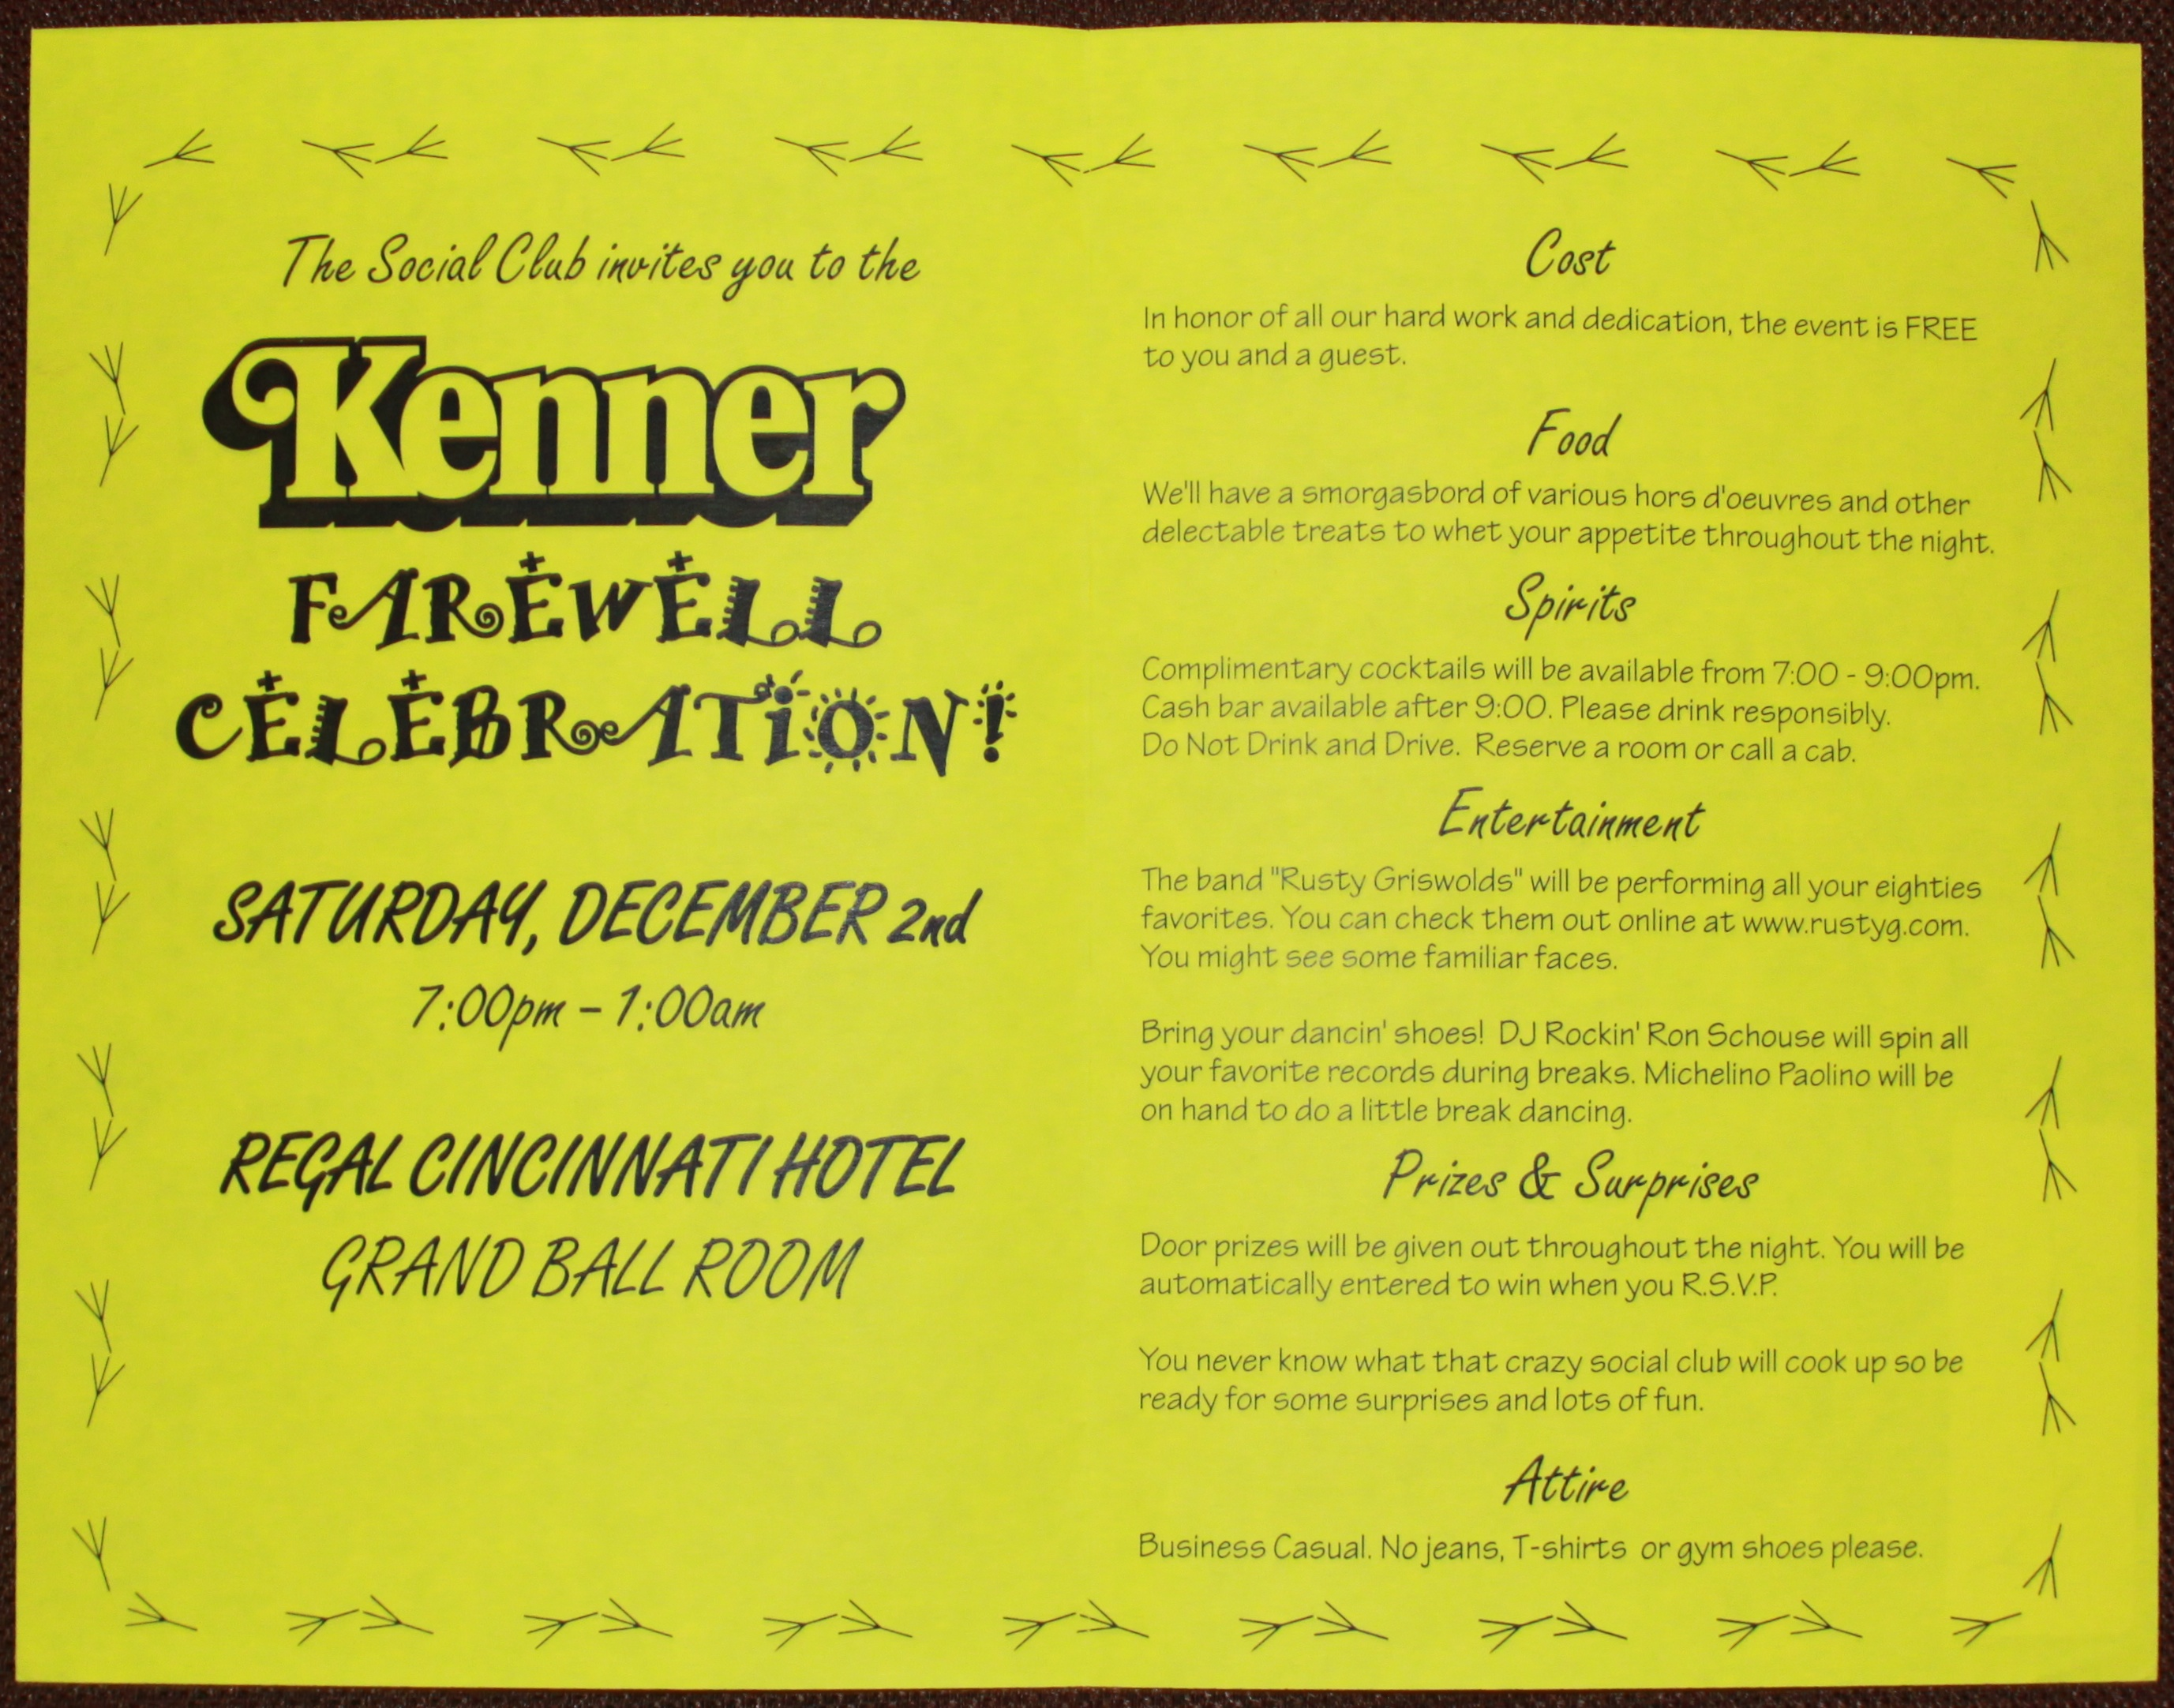 Kenner Farewell Party Invitation | KennerCollector.com